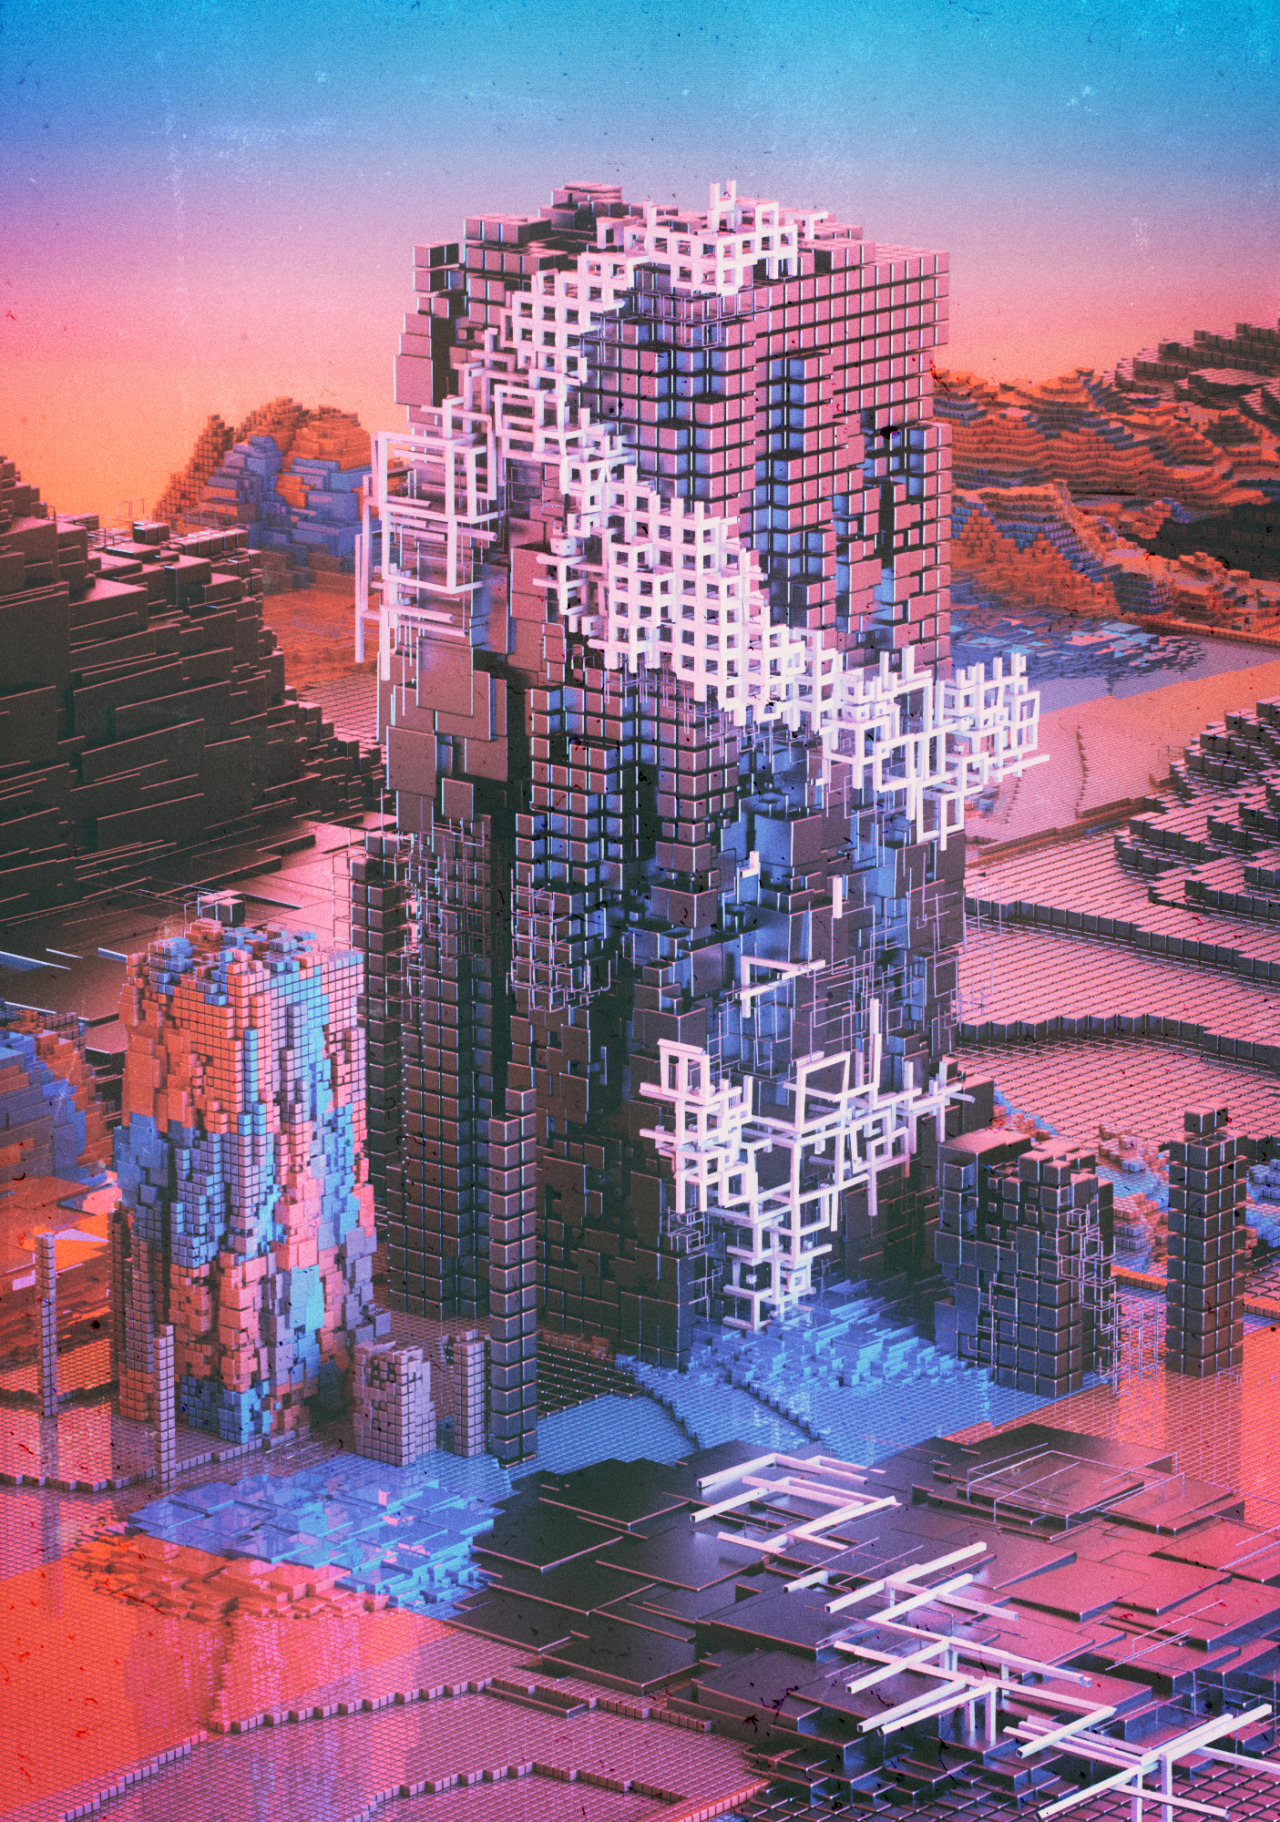 beeple_31_T.BUILT